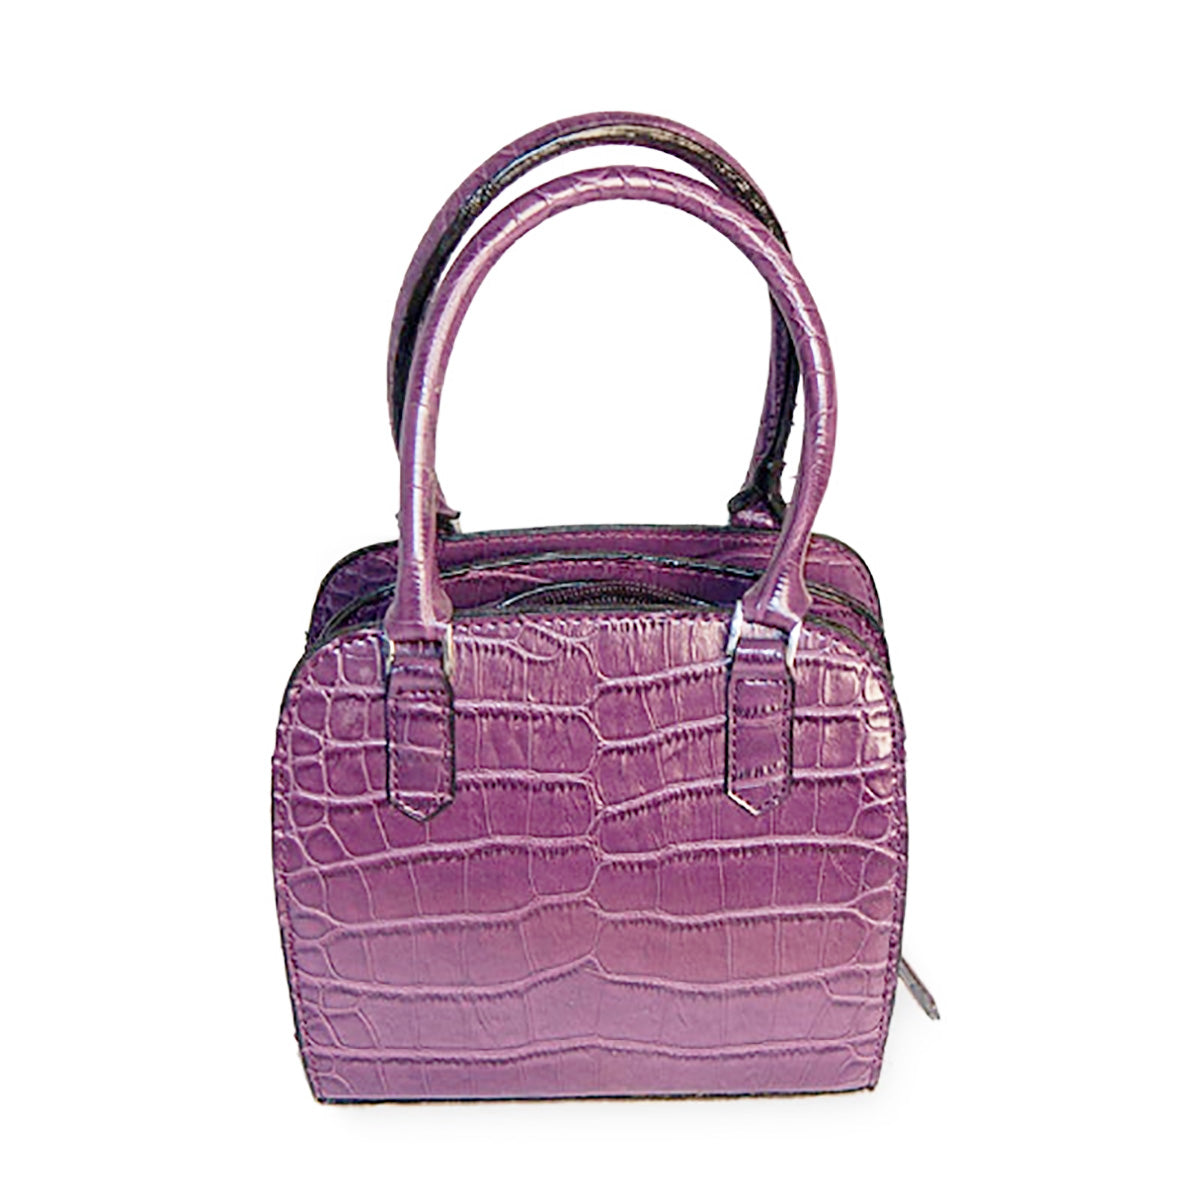 Small Purple Handbag, Faux Alligator Purse, New Old Stock